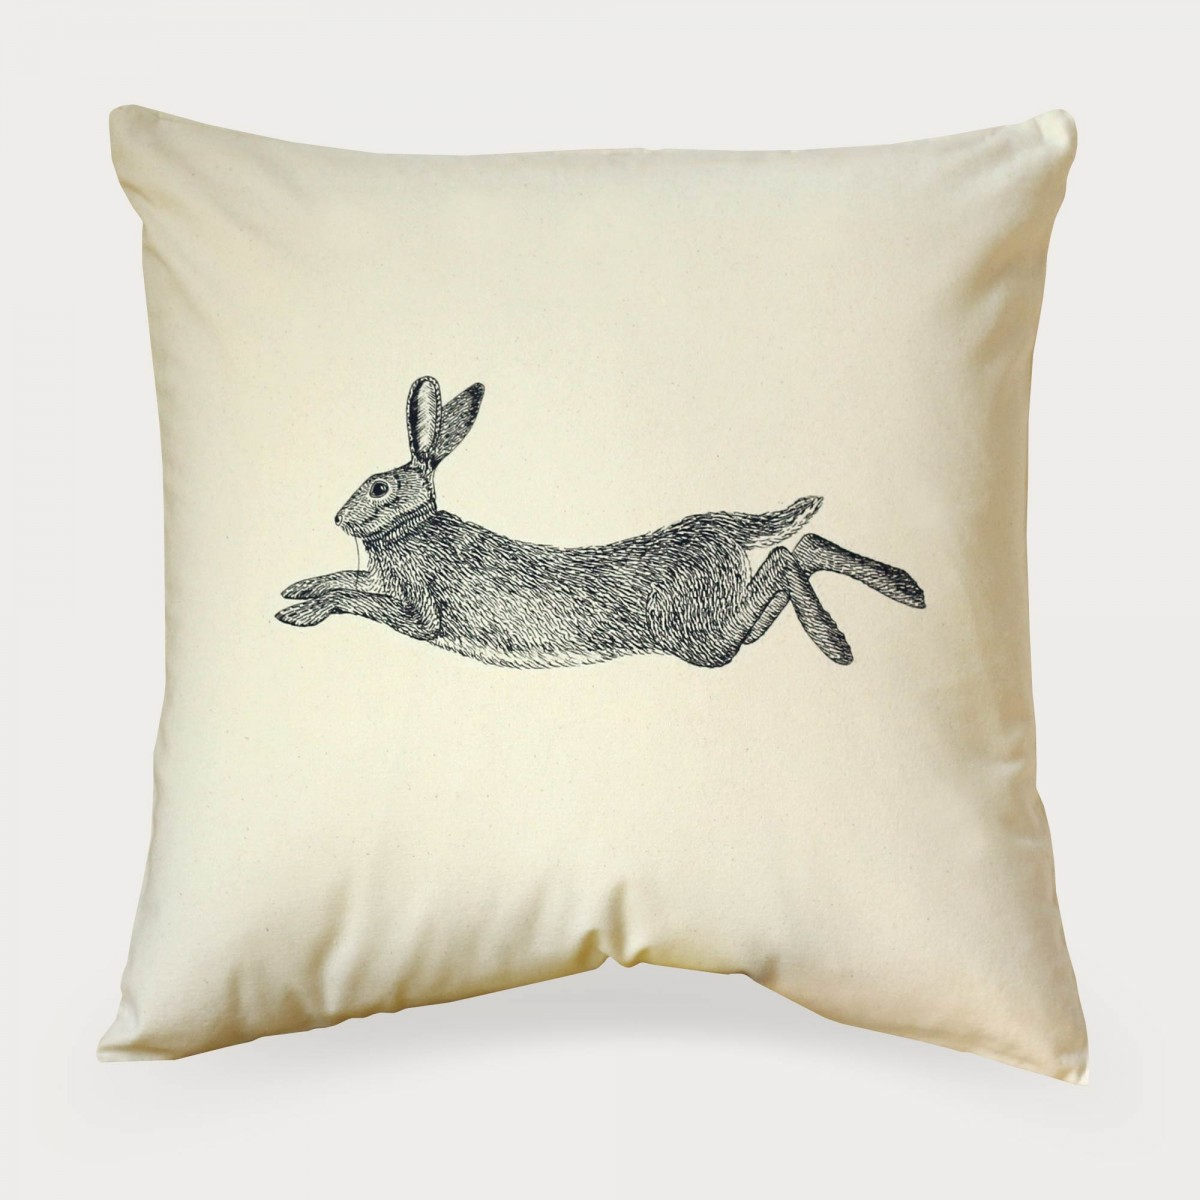 Hare Natural Cotton Canvas Square Cushion Cover